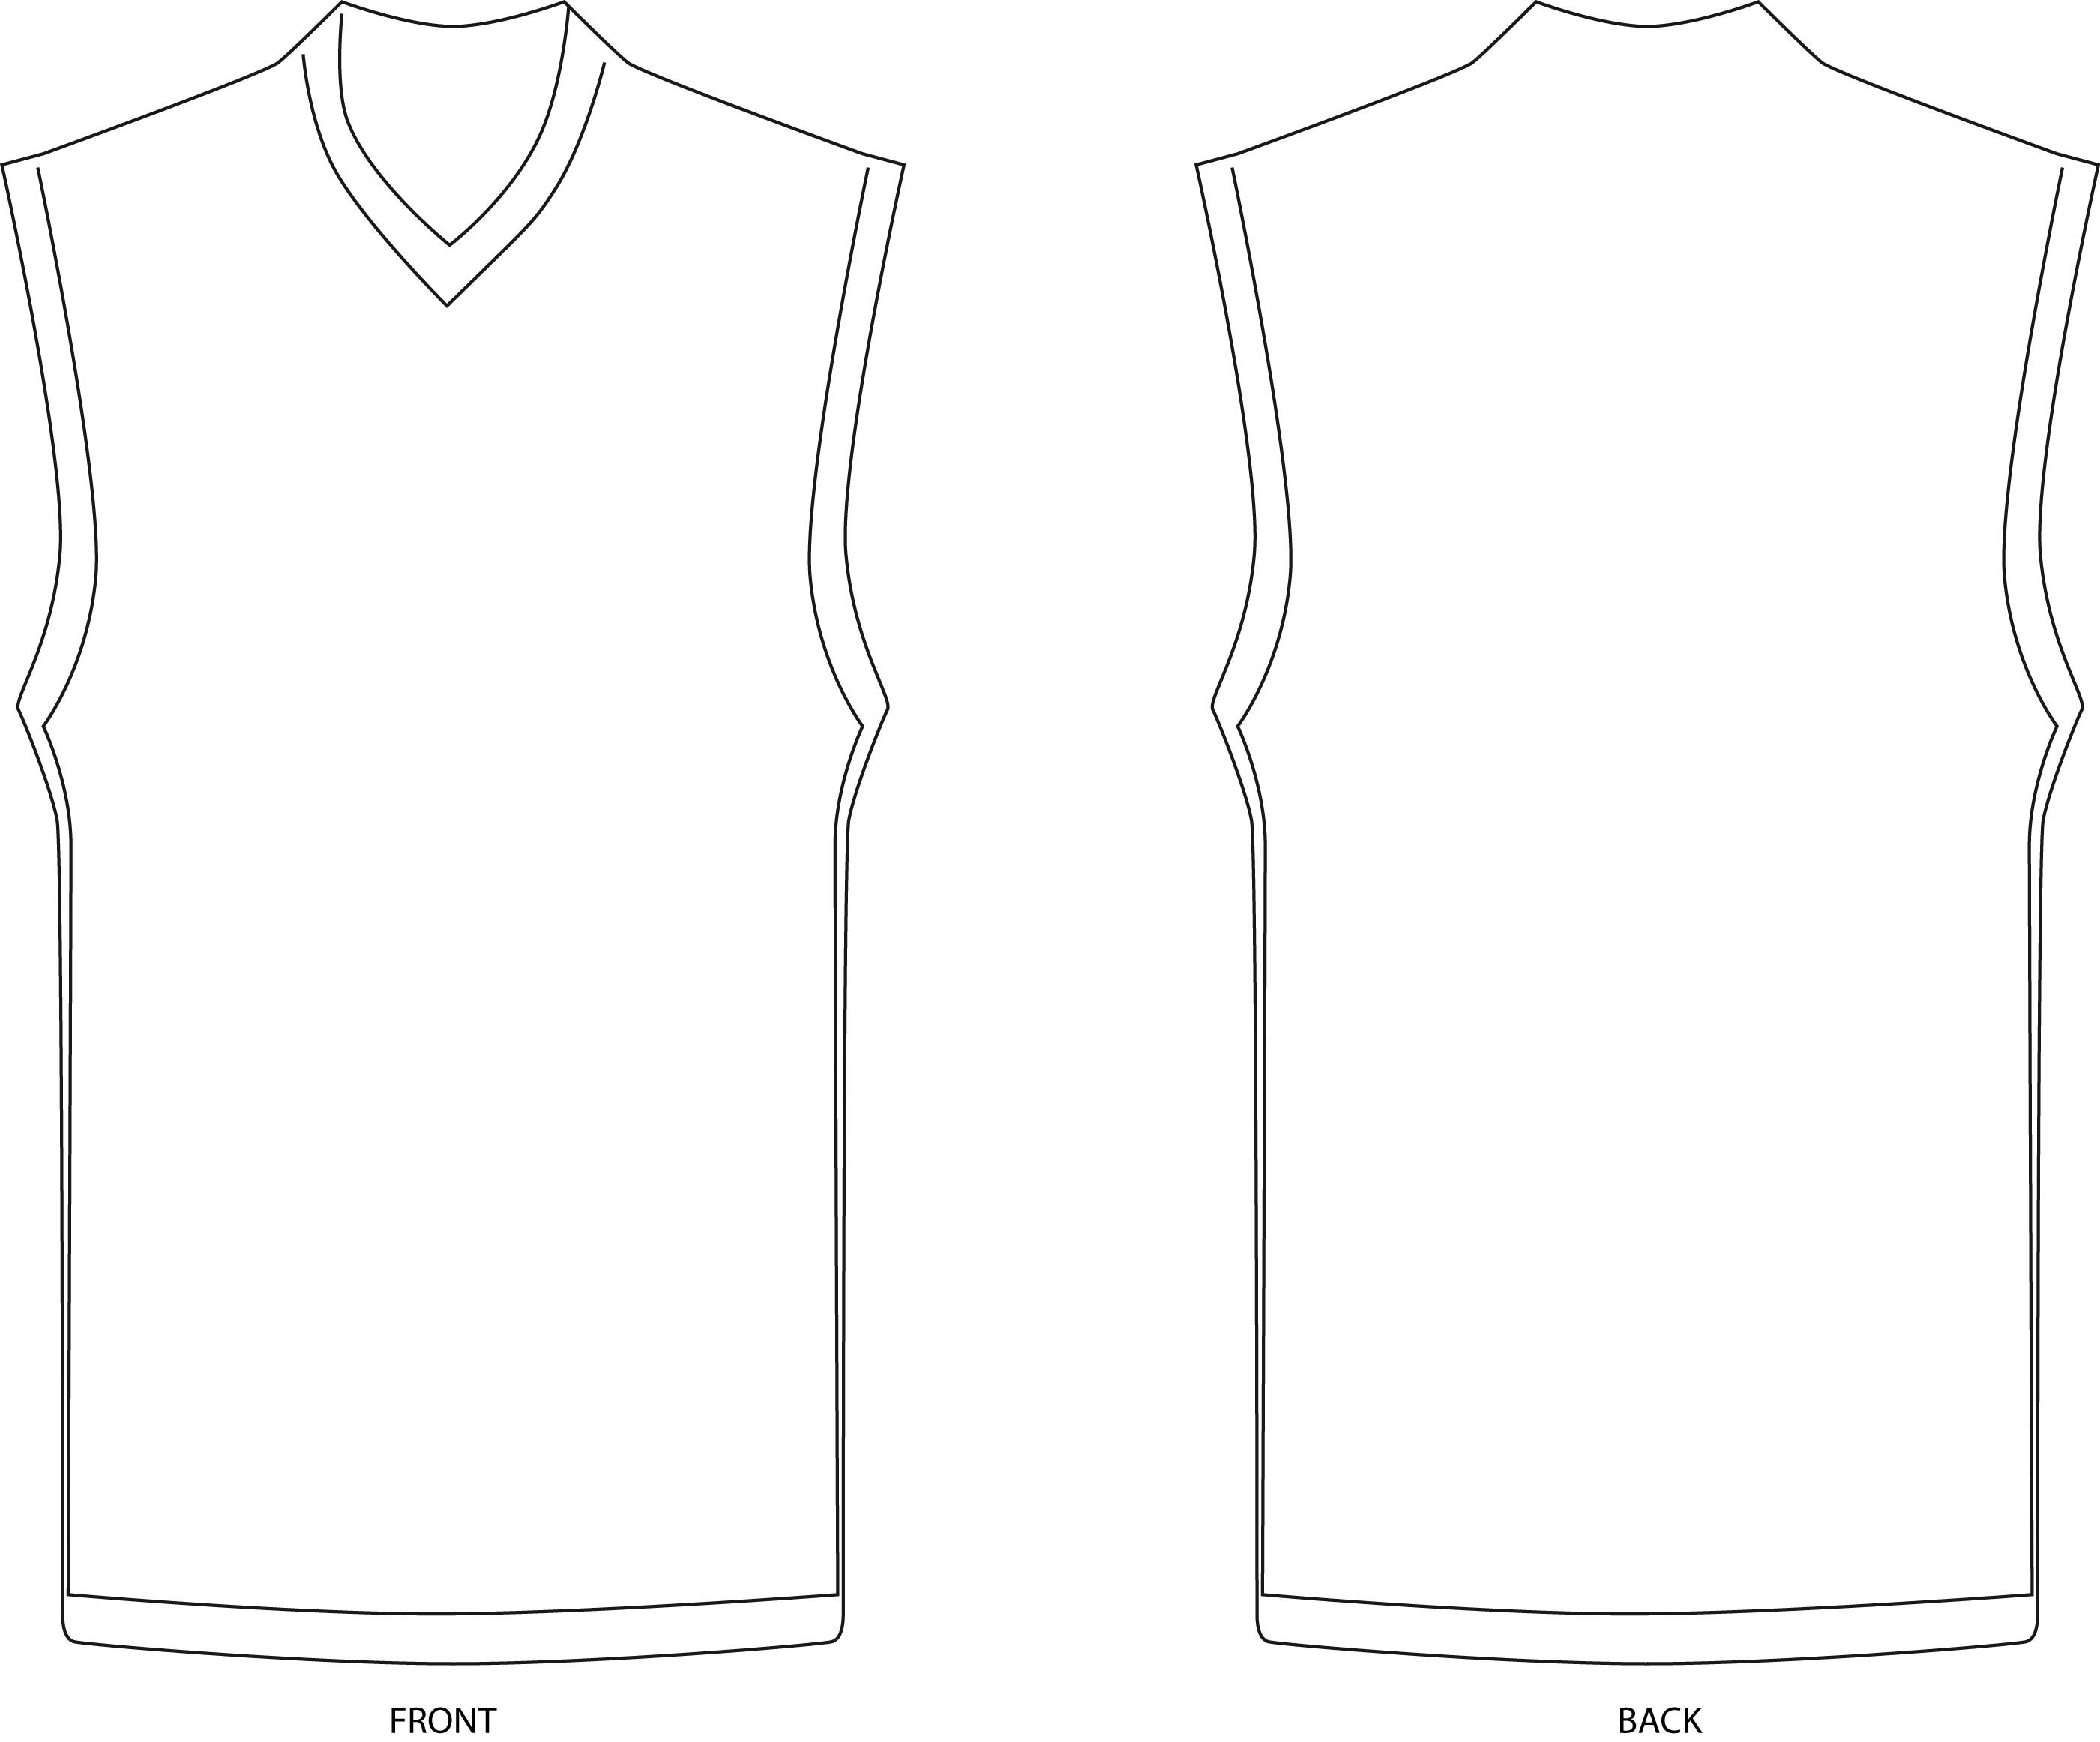 Design A Jersey With Images